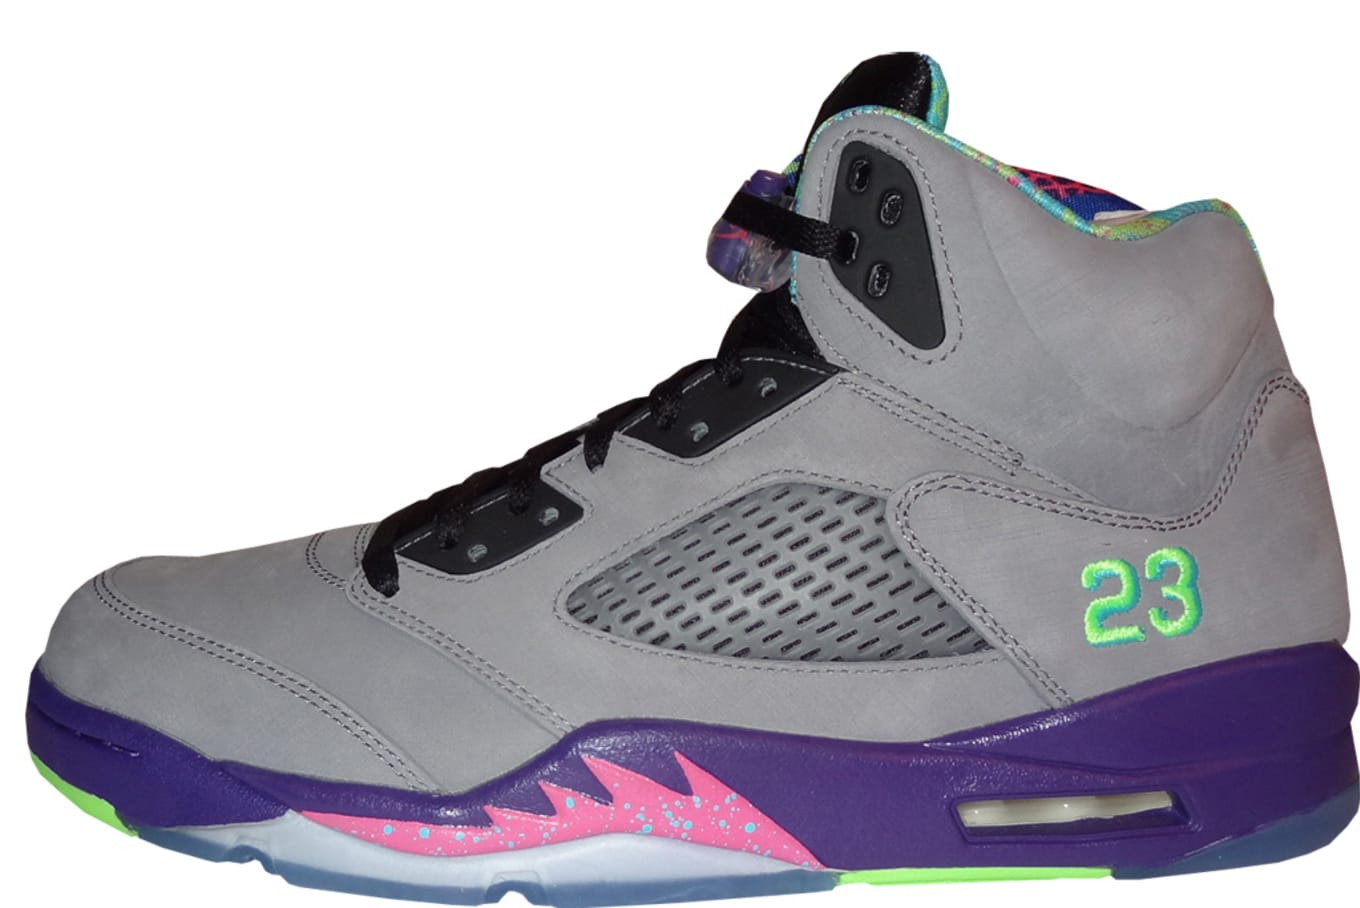 cc8fb5300ddd Air Jordan 5  The Definitive Guide to Colorways